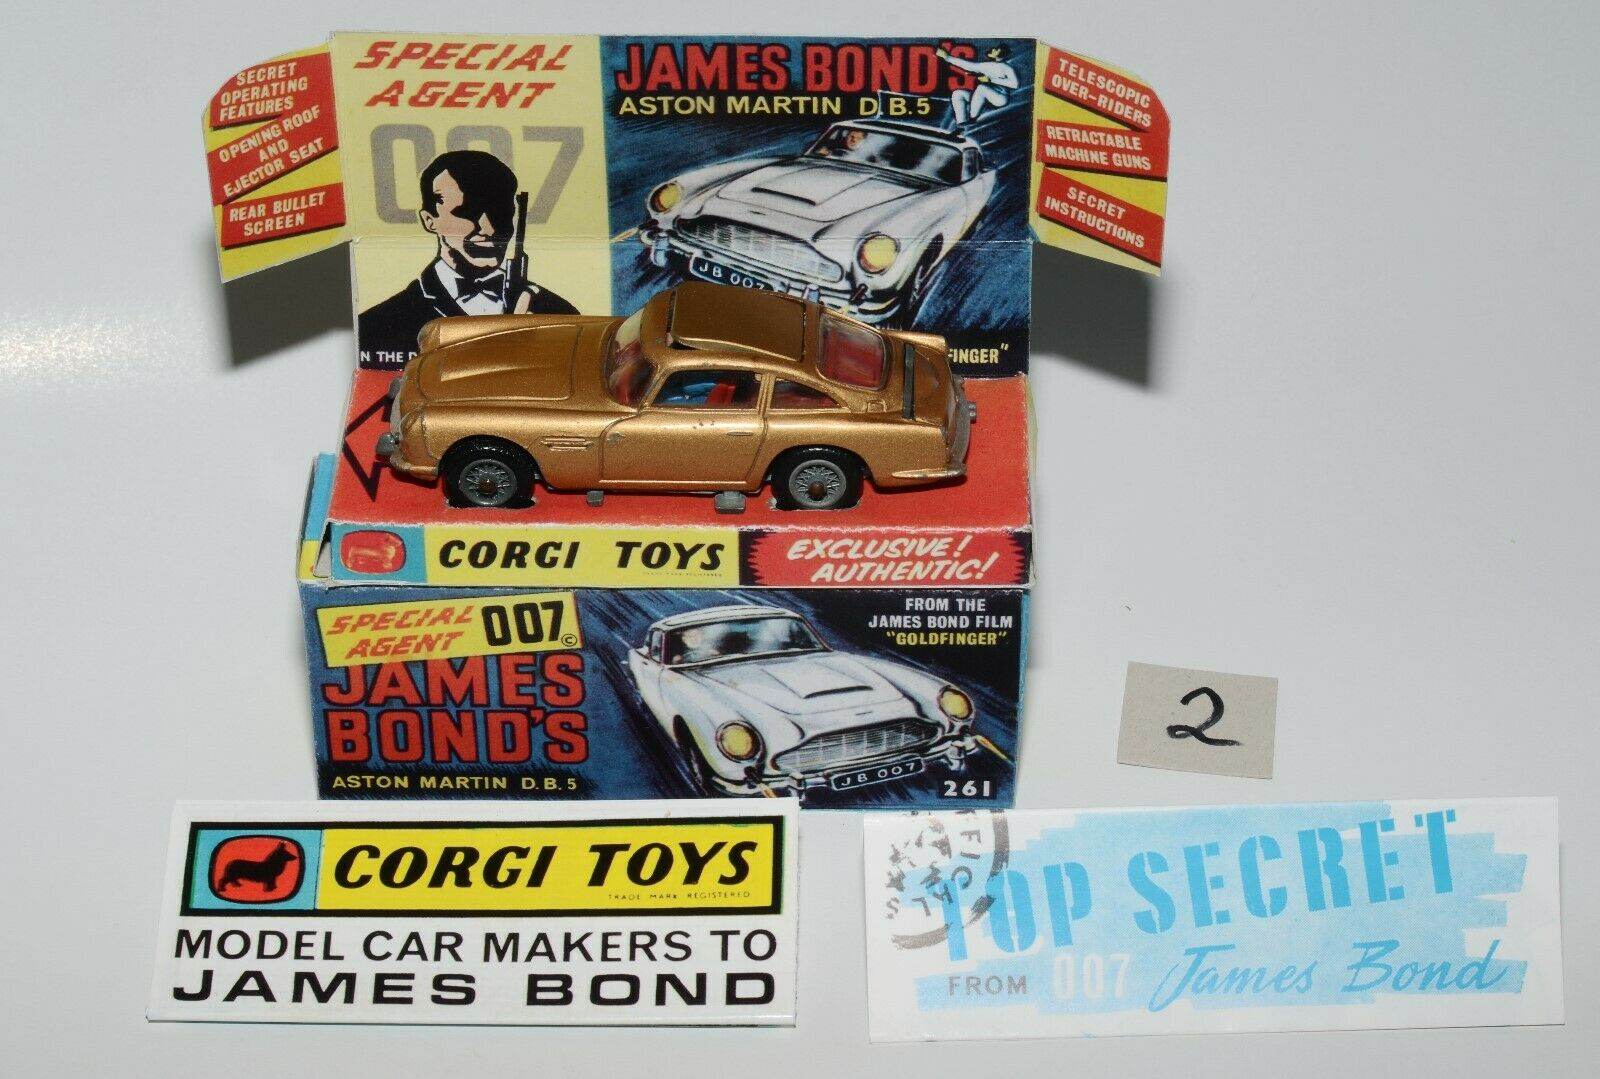 CORGI giocattoli 261JAMES BOND ASTON MARTIN d.b.5 in REPROscatola con accessori  2